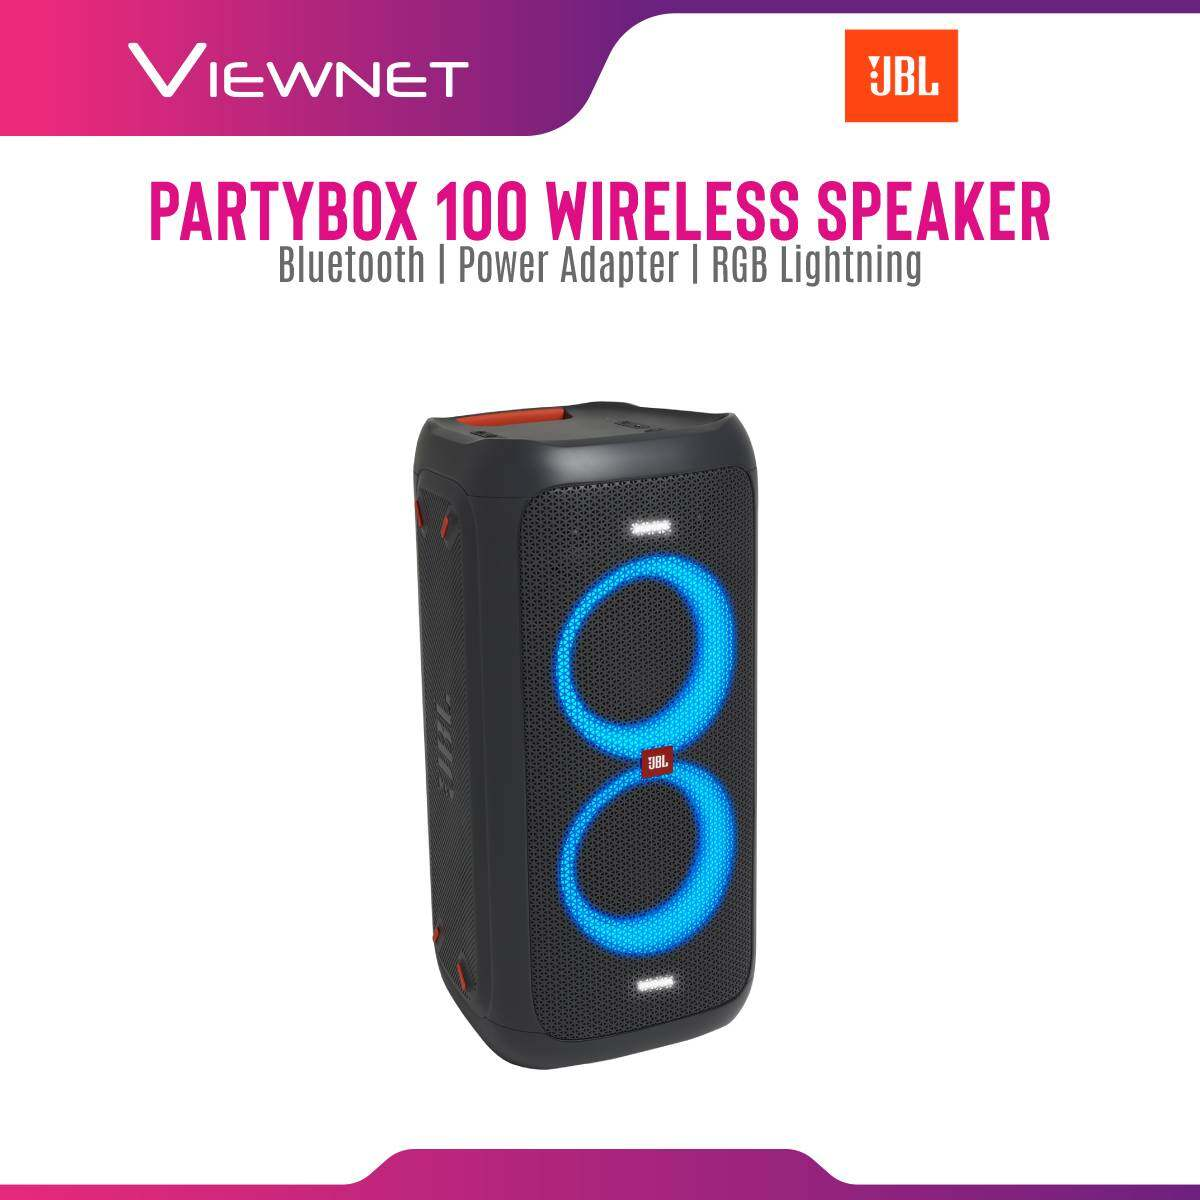 JBL Partybox 100 High Power Portable Wireless Bluetooth Audio System with RGB LED light, massive battery, JBL signature sound